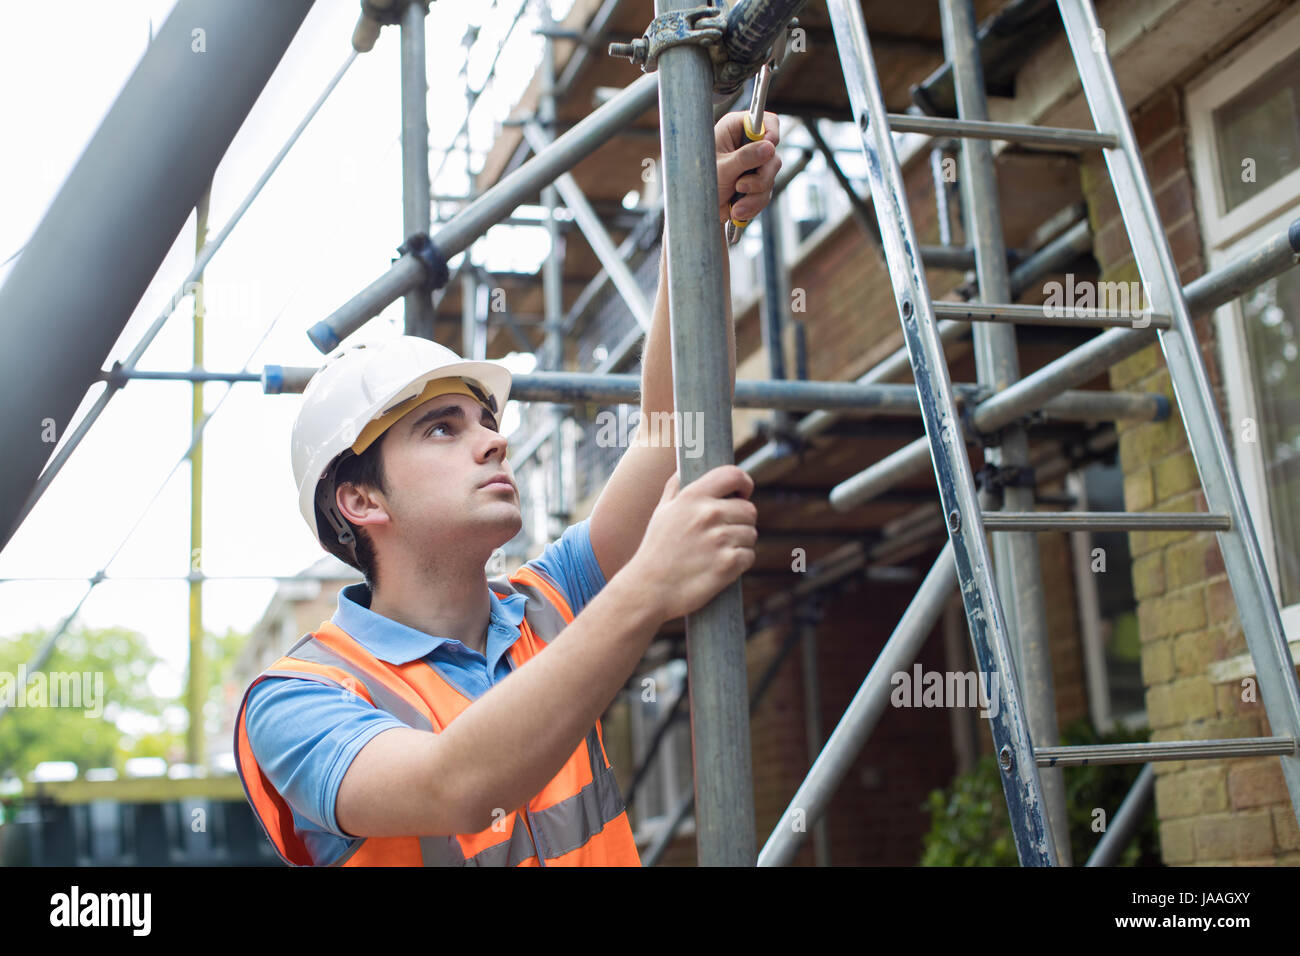 Builder On Site Putting Up Scaffolding - Stock Image